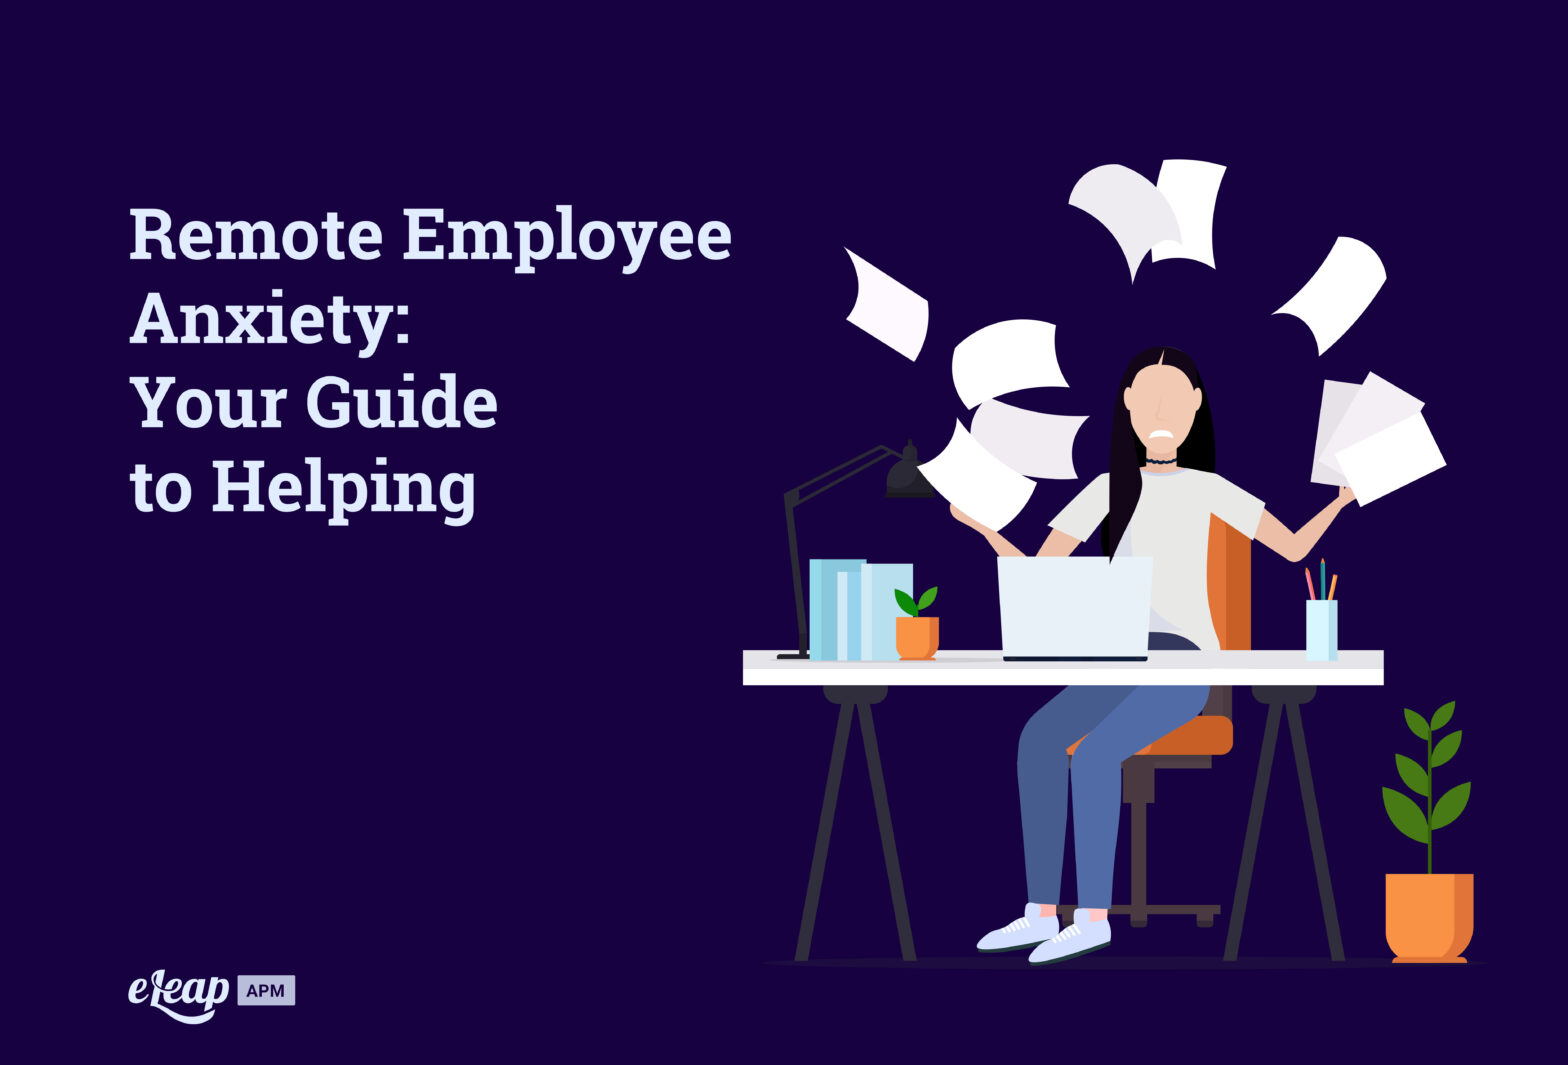 Remote Employee Anxiety: Your Guide to Helping